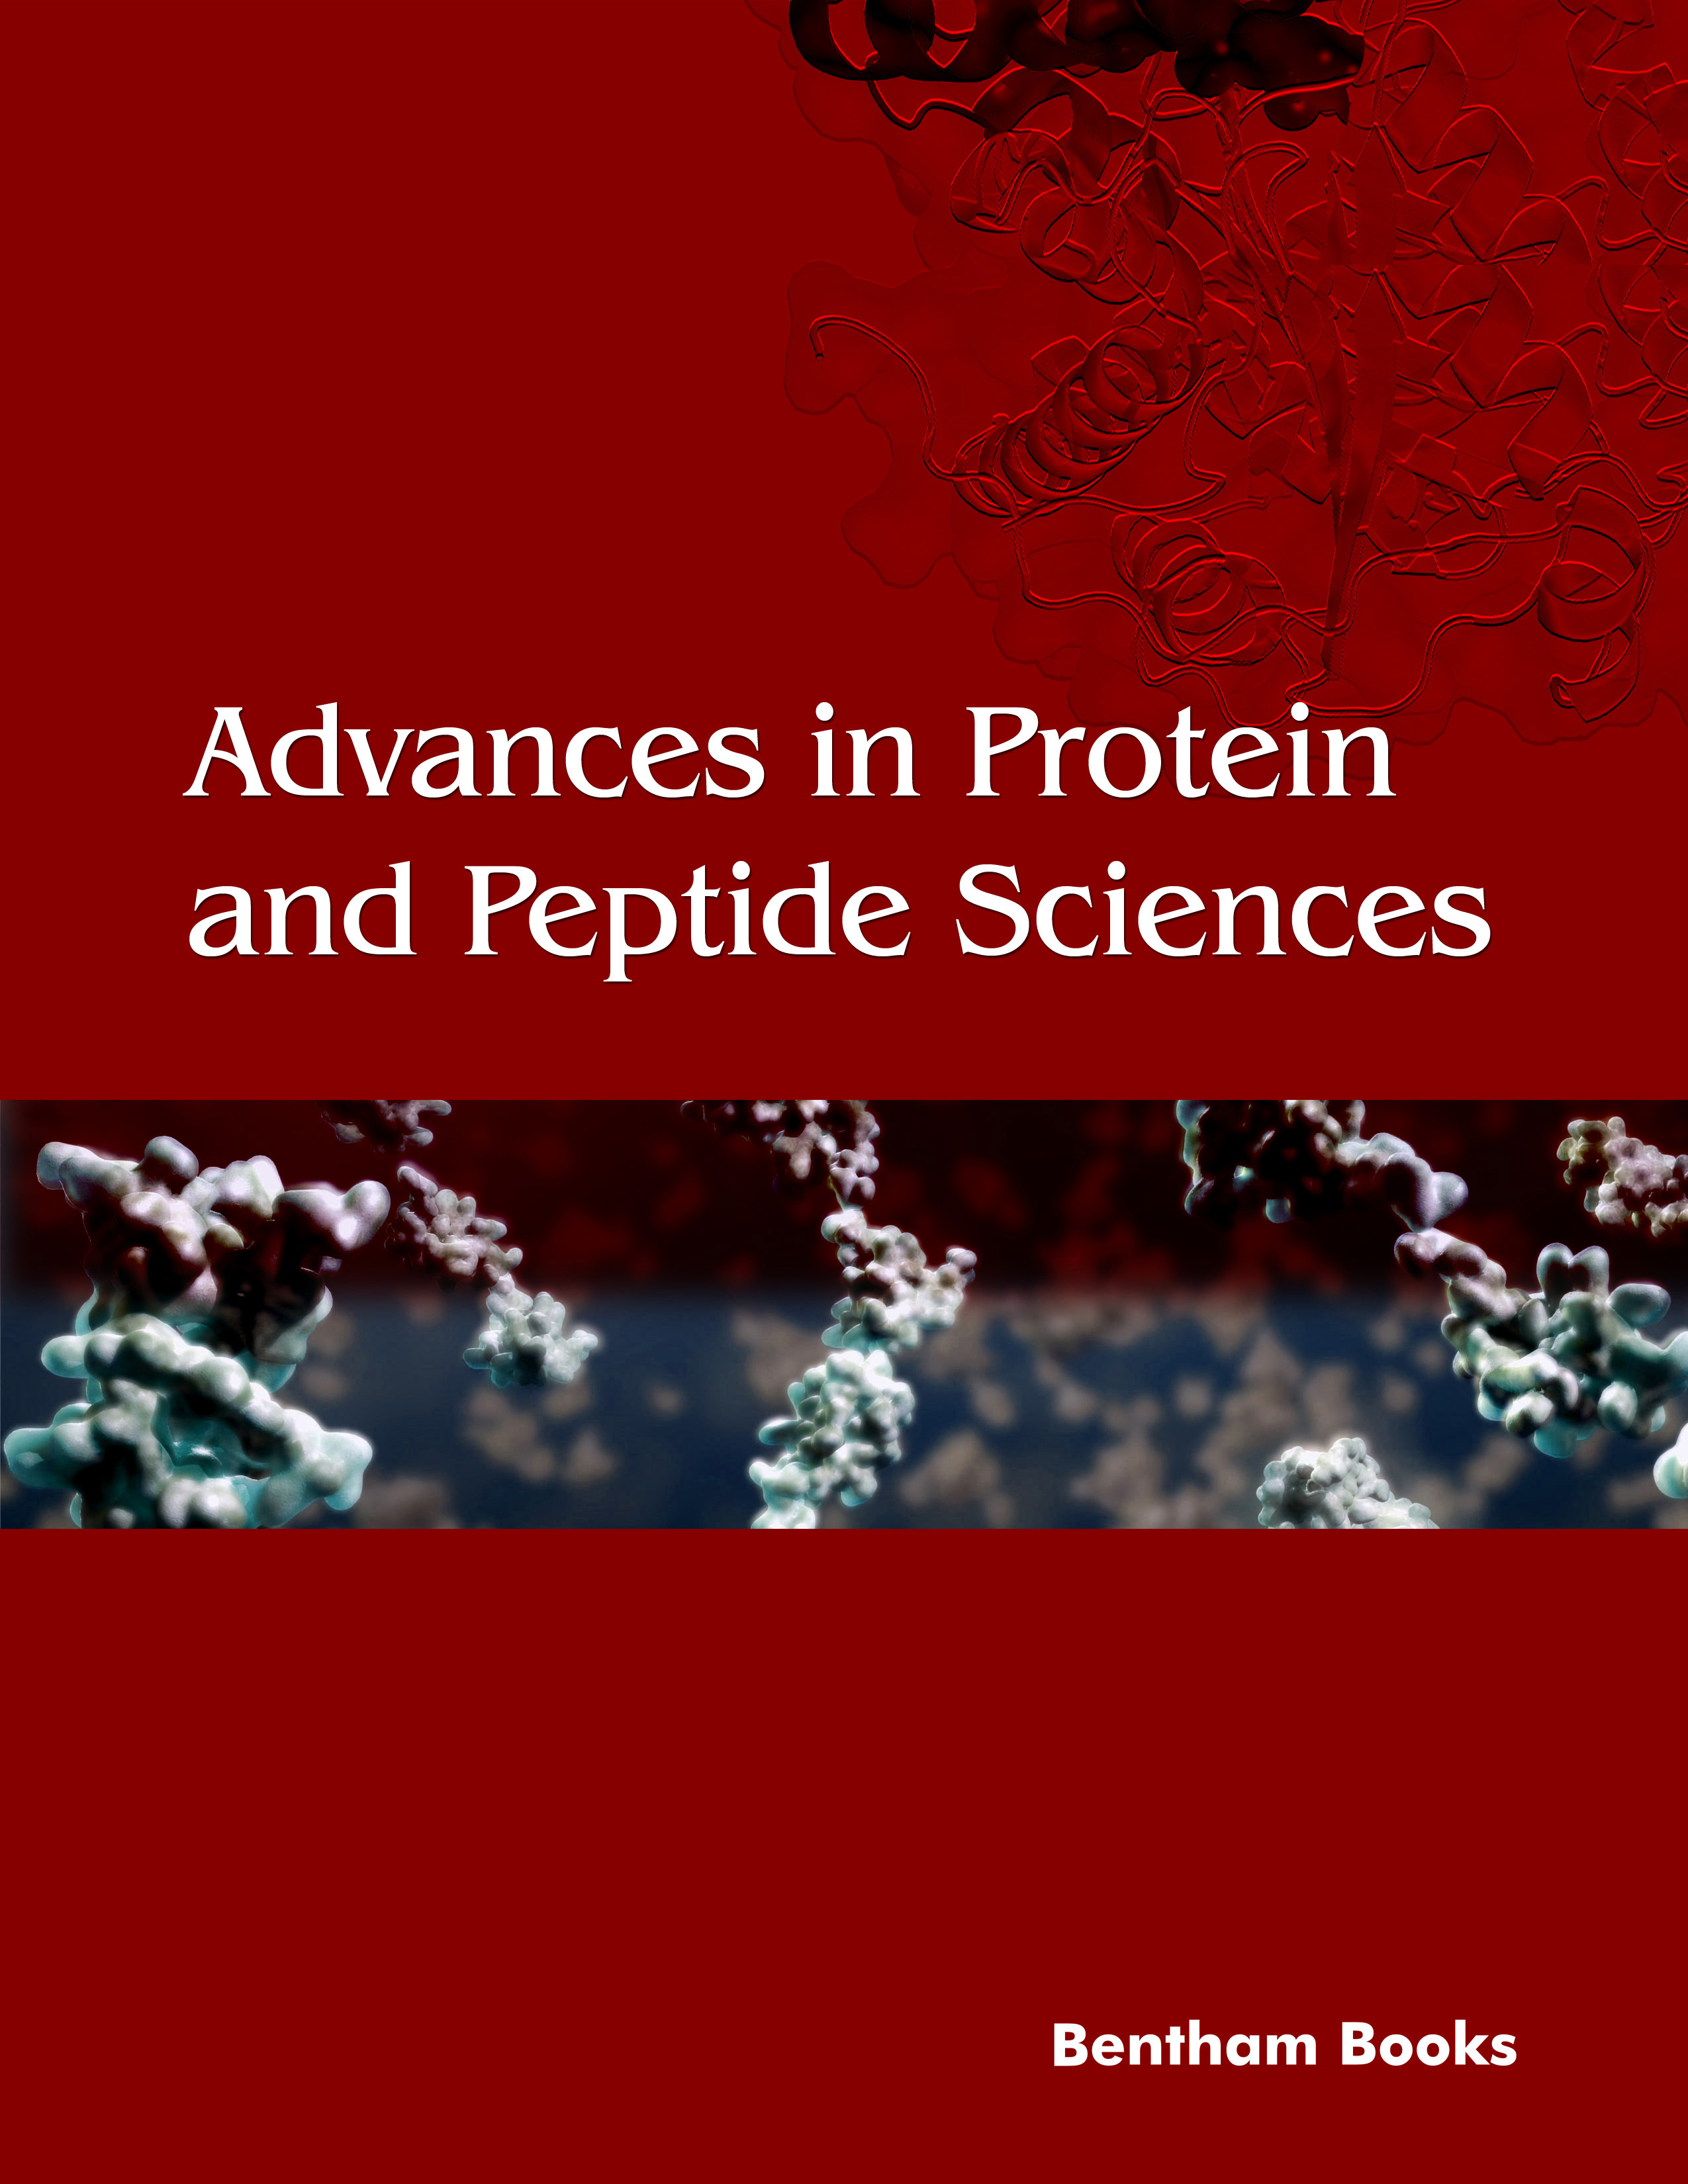 Advances in Protein and Peptide Sciences